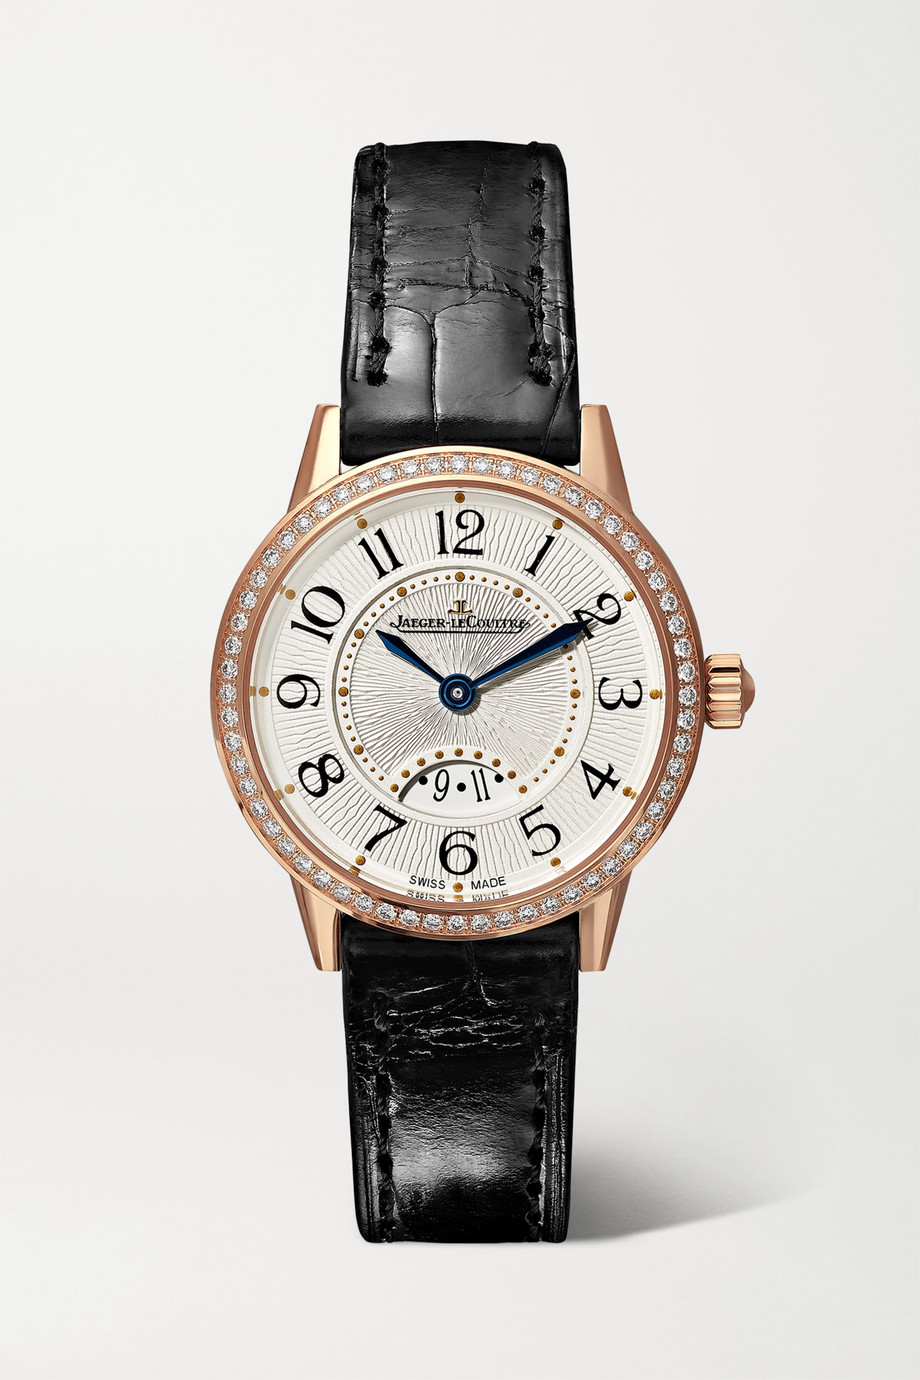 Jaeger-LeCoultre Rendez-Vous Date small 29mm 18-karat rose gold, alligator and diamond watch